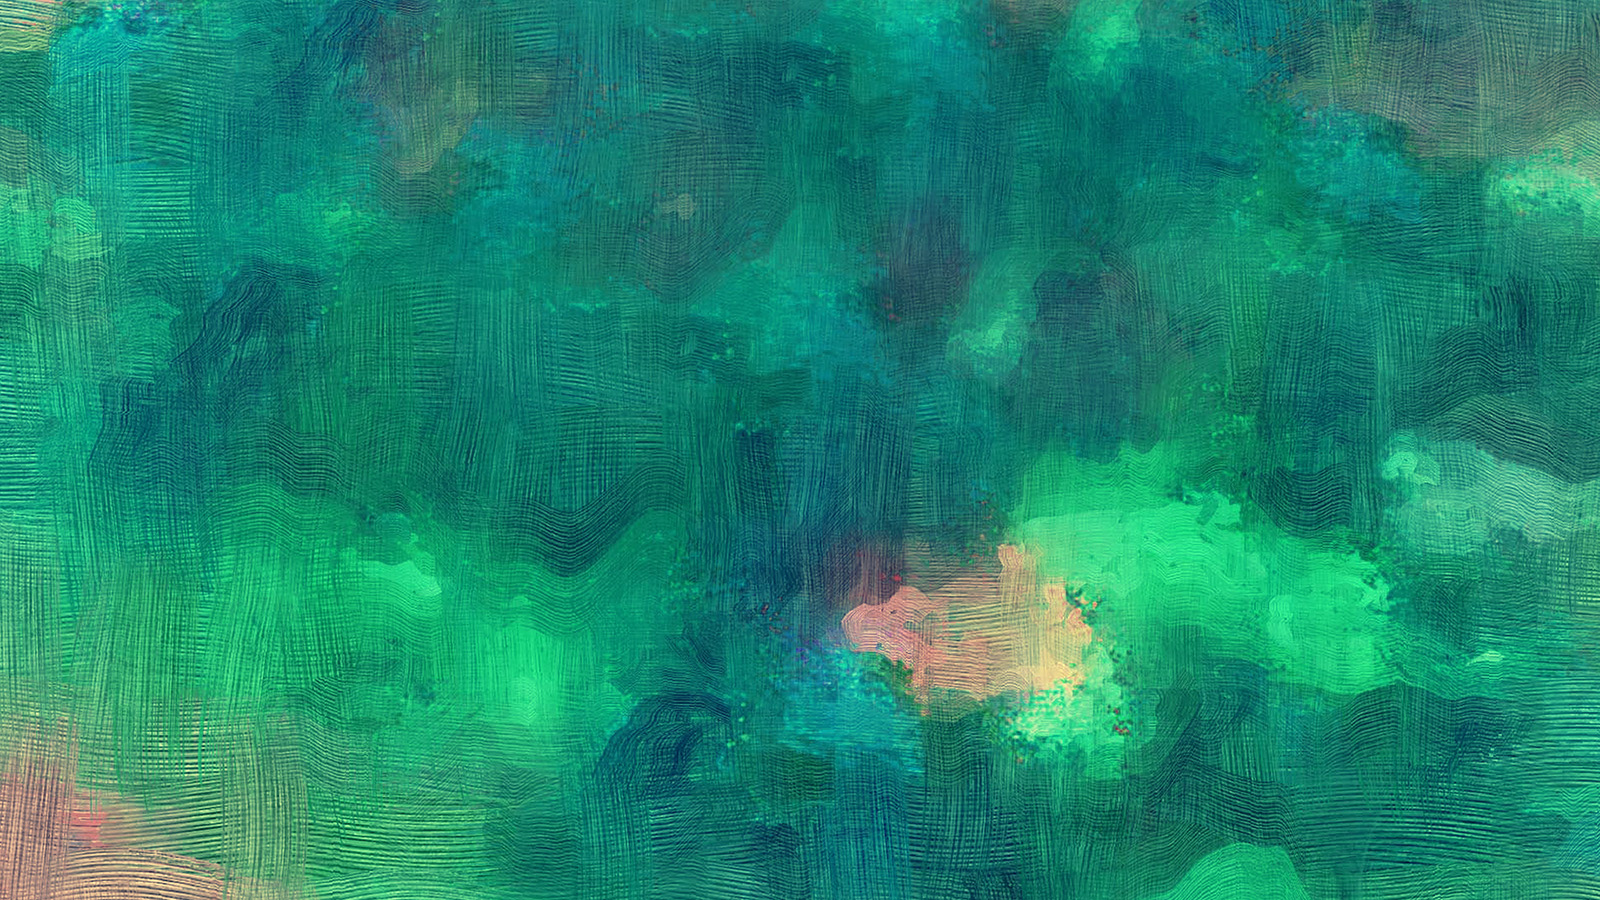 Fall Wallpaper Ipad Vl23 Samsung Galaxy Green Texture Art Oil Painting Pattern